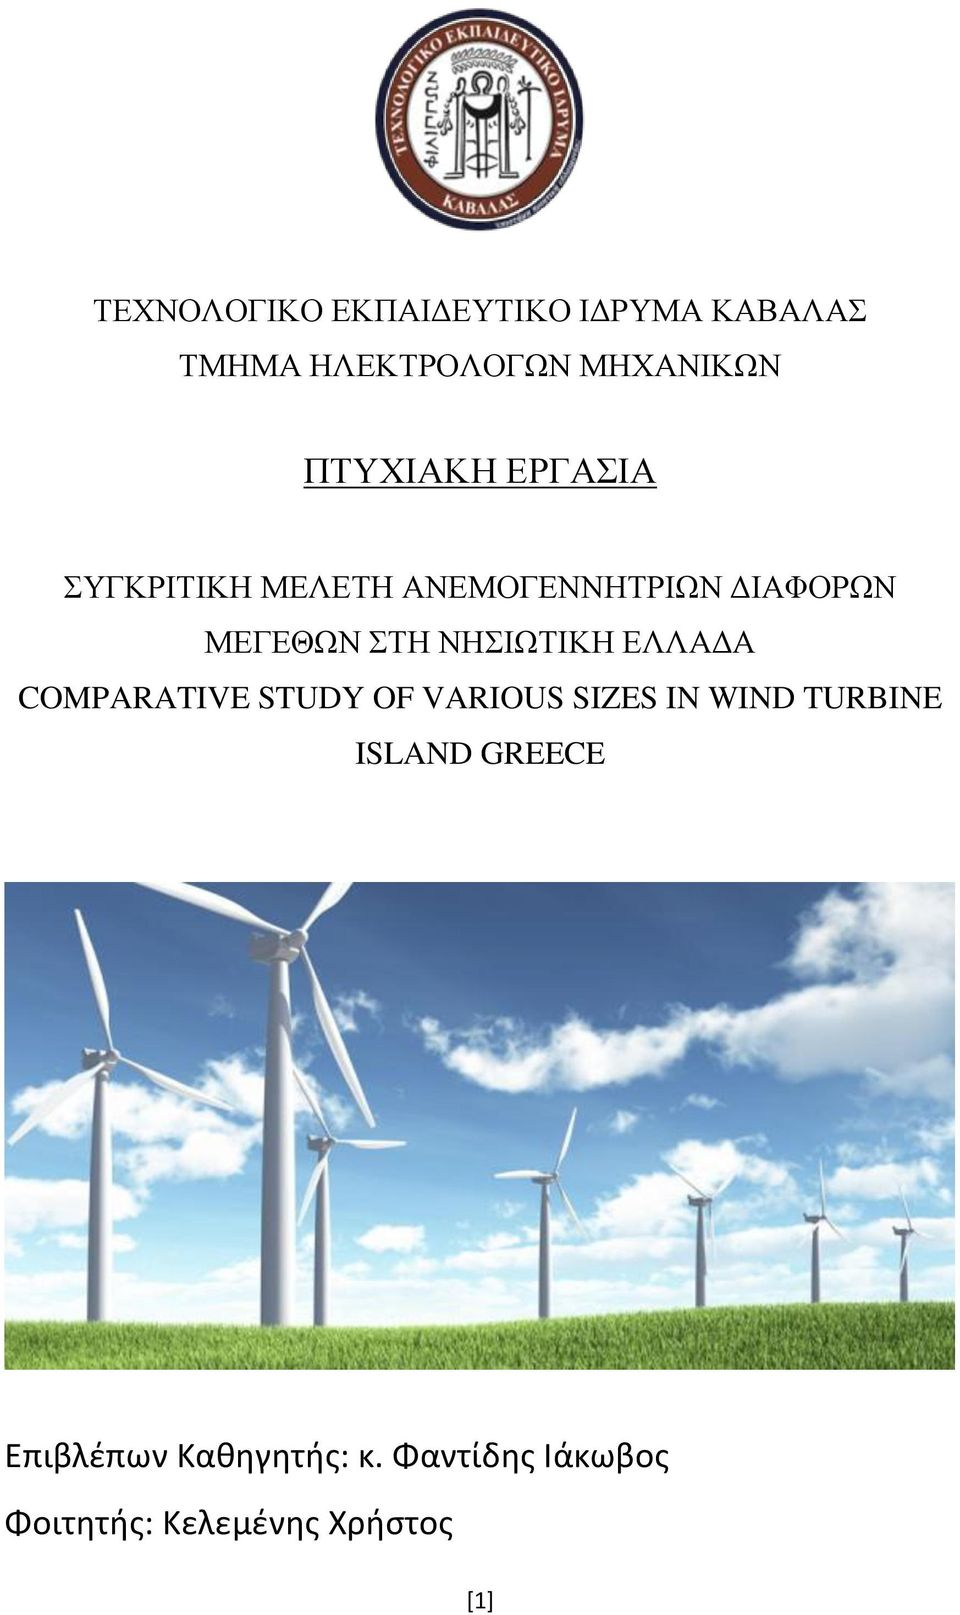 ΝΗΣΙΩΤΙΚΗ ΕΛΛΑΔΑ COMPARATIVE STUDY OF VARIOUS SIZES IN WIND TURBINE